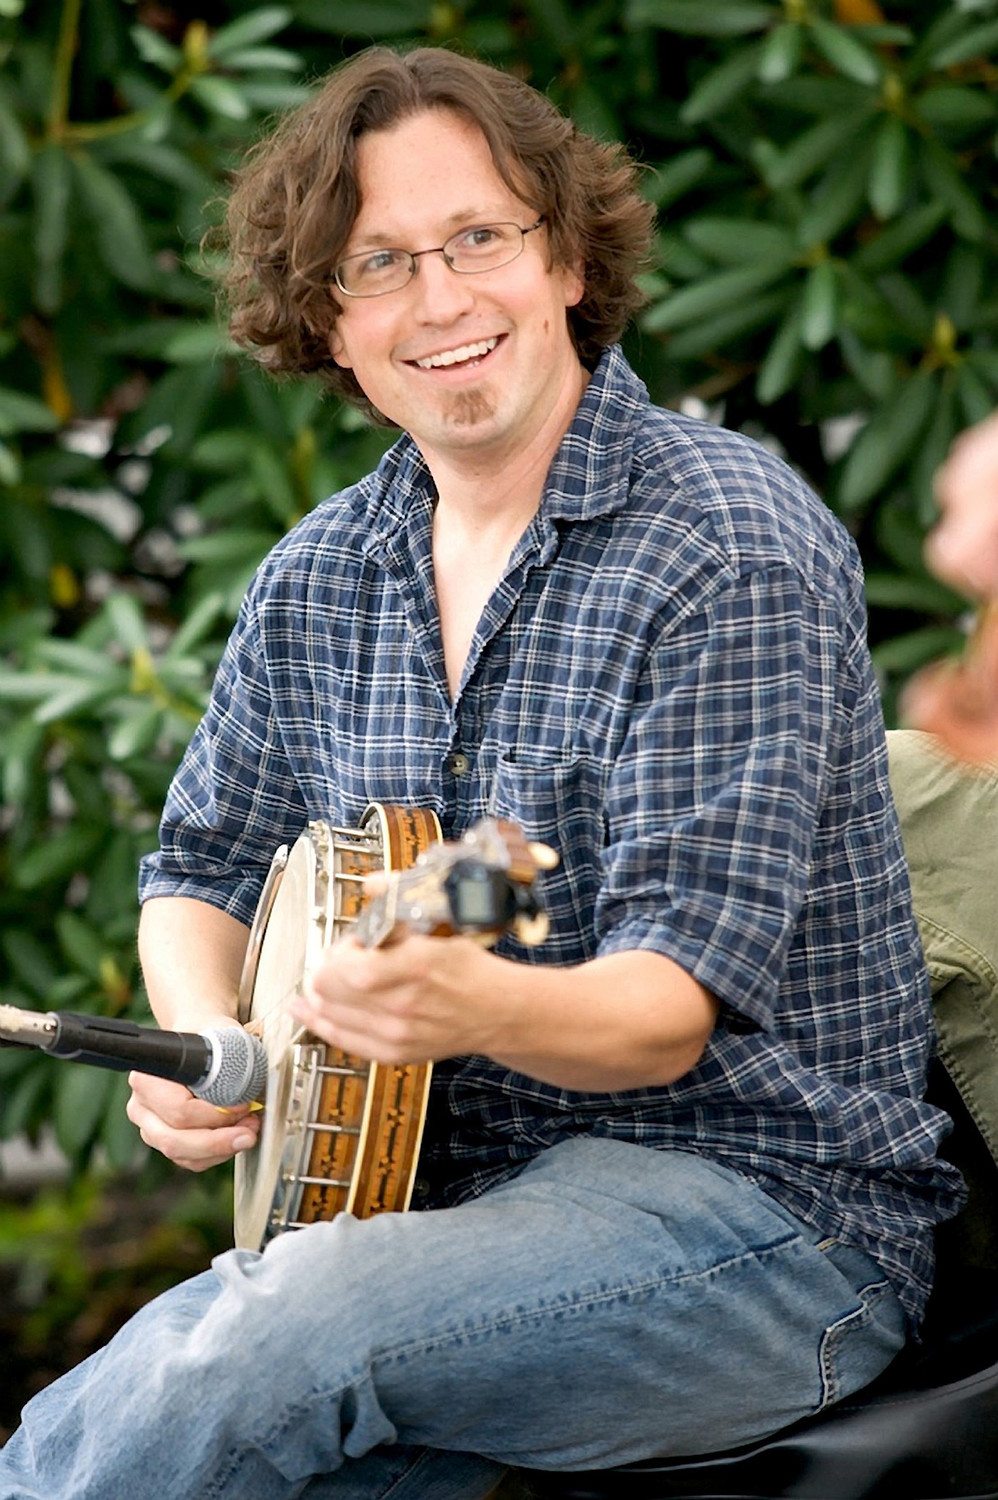 Glen Loper performs at the Rehoboth contra dance on Friday, July 13